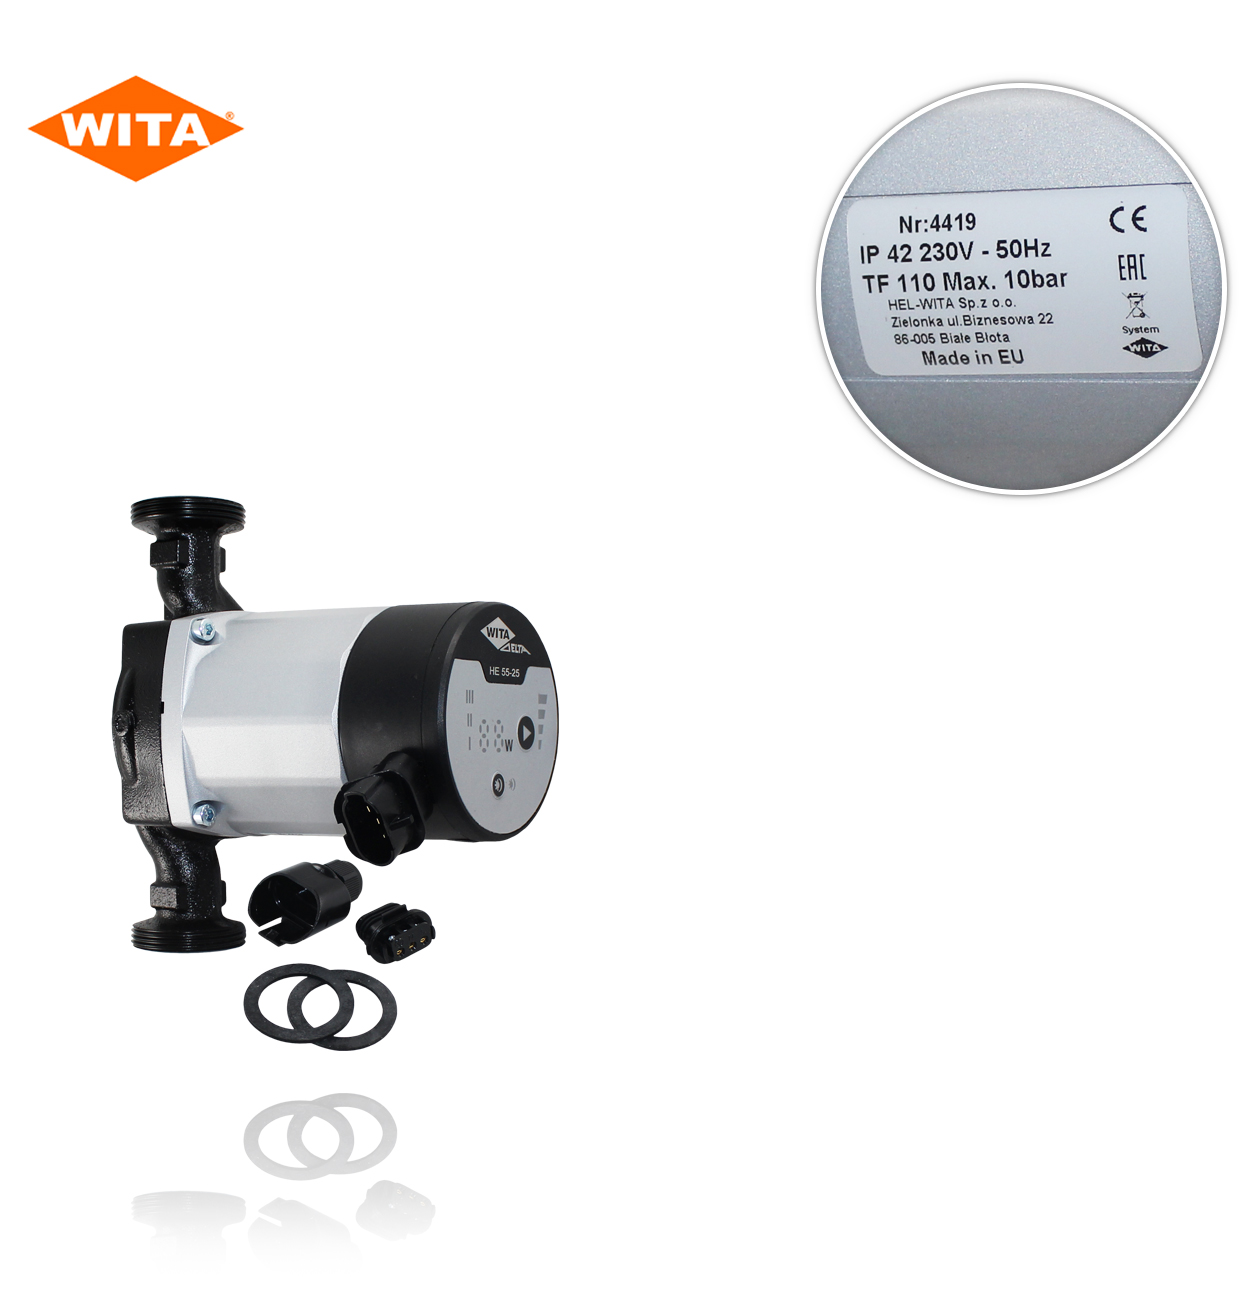 "HE 55-25       LED   1.1/2 ""   180mm.  230V  BOMBA DE ALTA EFICIENCIA WITA"